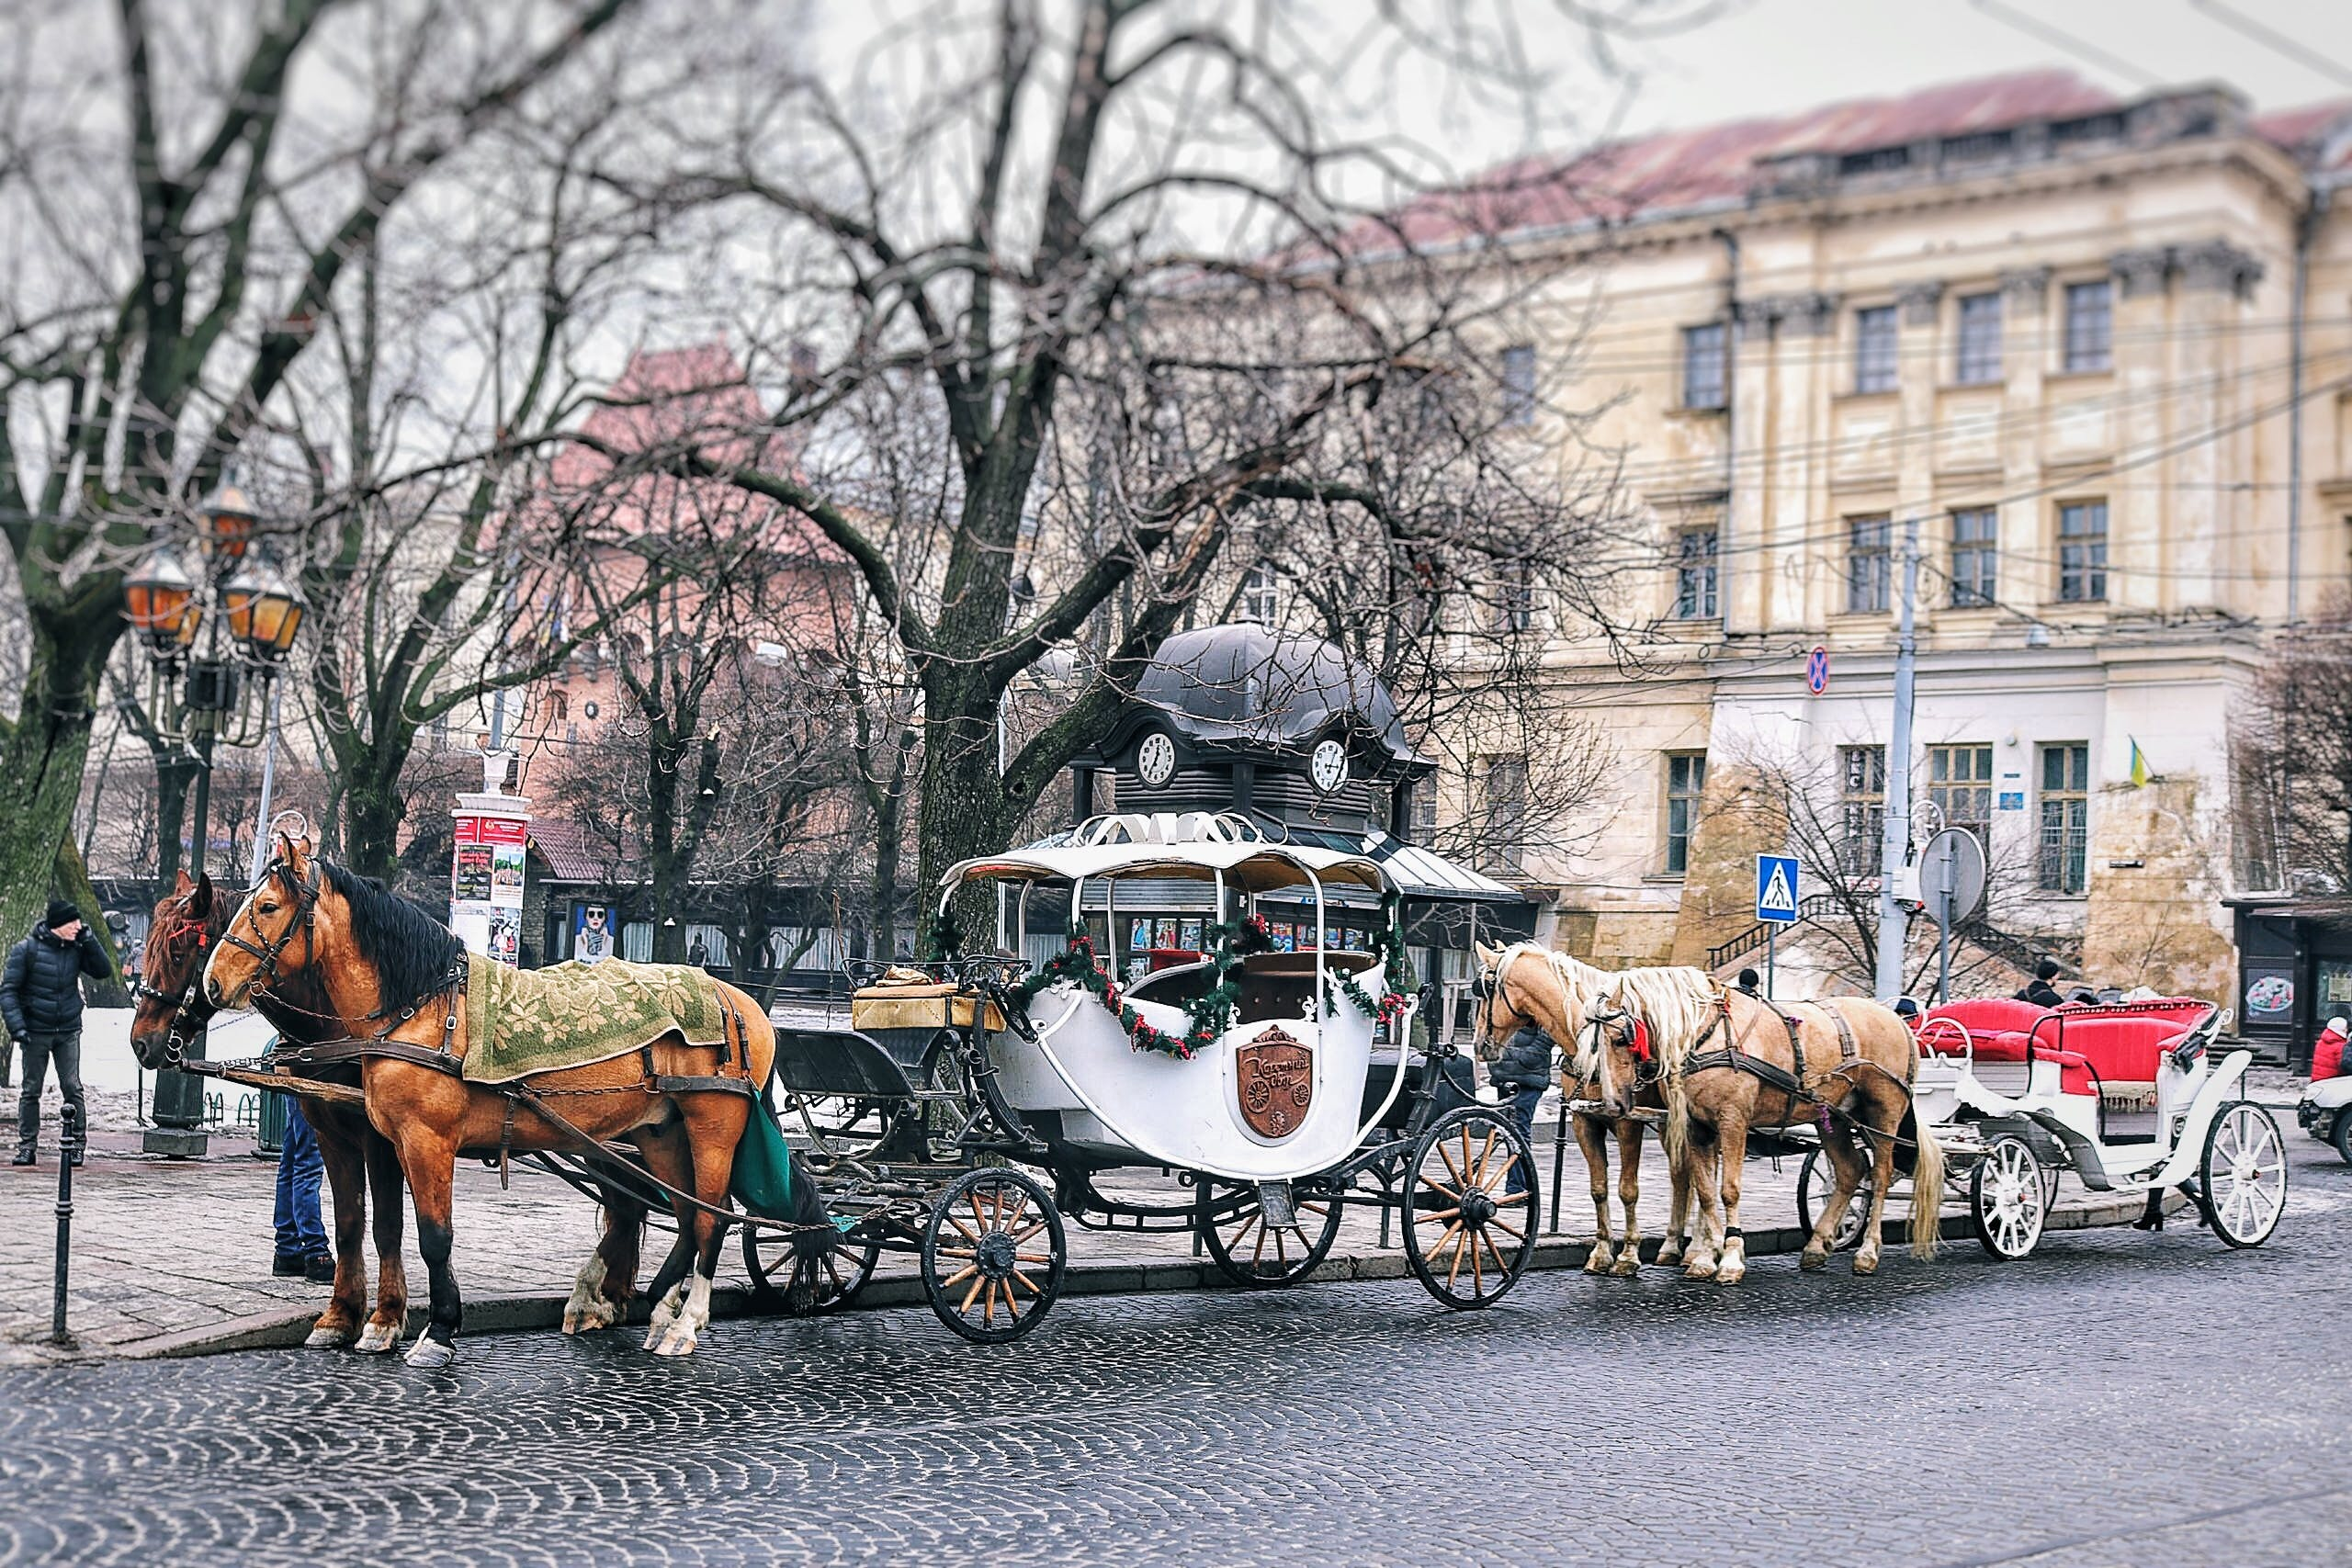 Brown Horses With Carriage Near Building